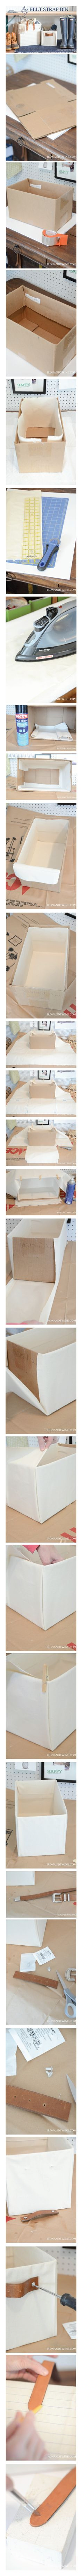 ace hardwood flooring ri of 156 best how to images on pinterest plastic bags cooking tips with here is a great step by step tutorial on making your own belt strap bin ace hardware